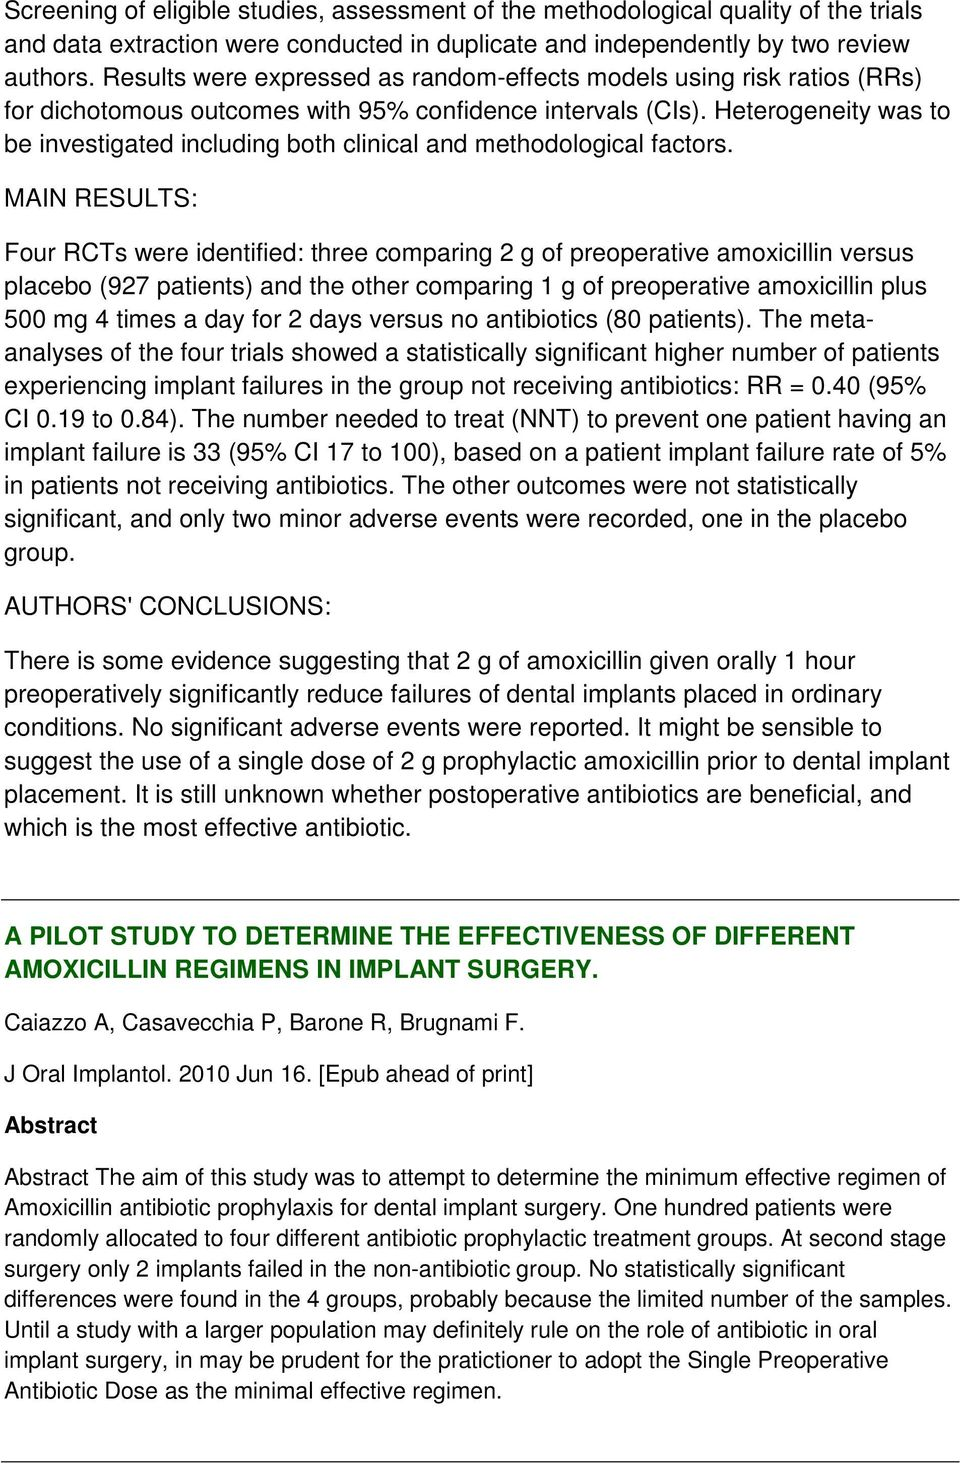 Antibiotic Prophylaxis And Early Dental Implant Failure A Quasi